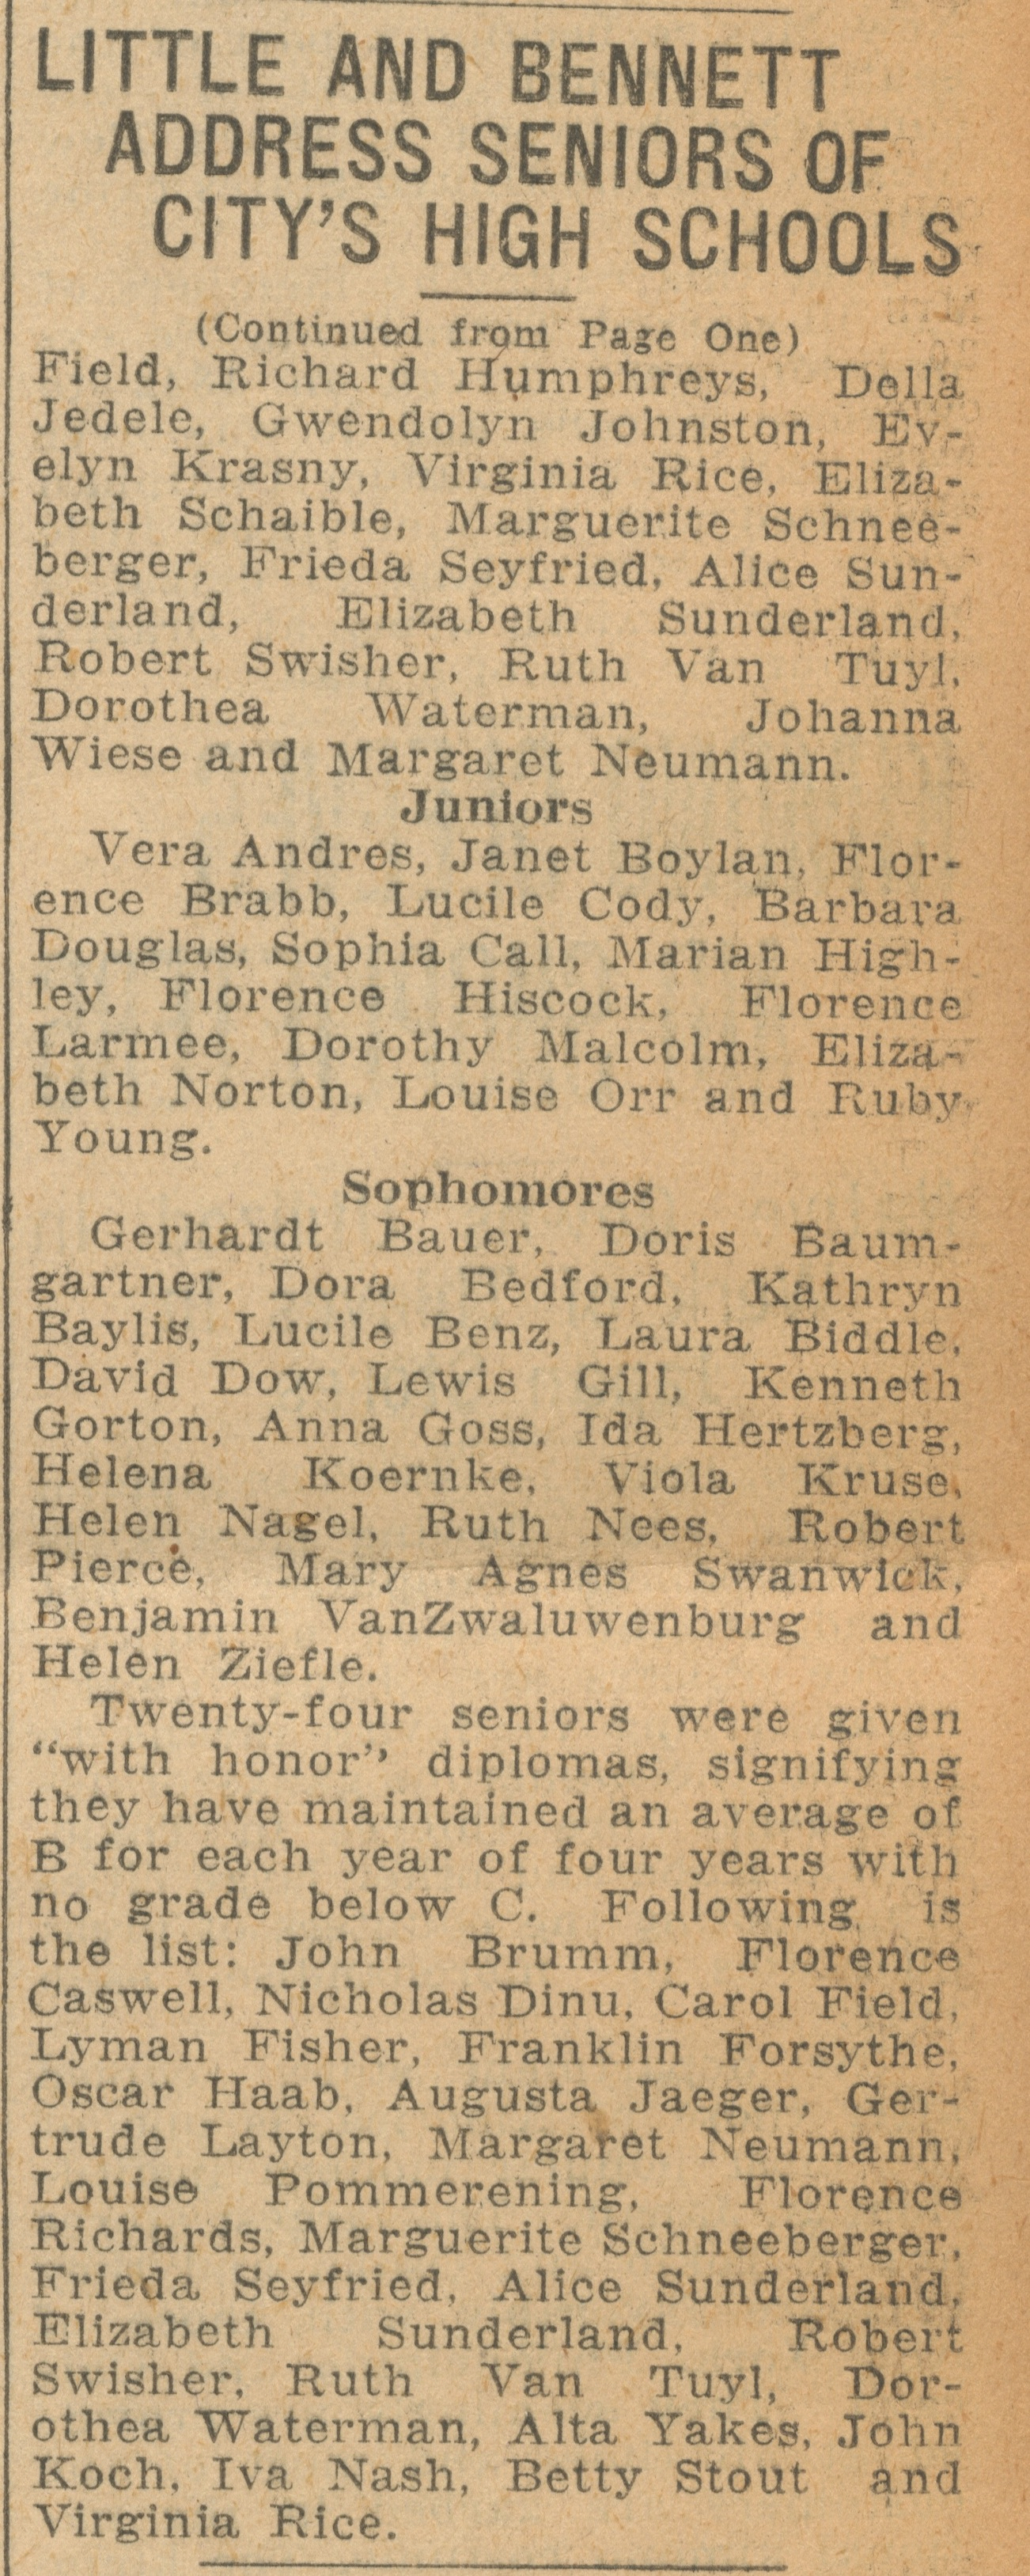 Little And Bennett Address Seniors Of City's High Schools: 208 Students Are Awarded Their Diplomas At Exercises In Hill Auditorium; Annual Honor Roll Is Announced - June 17, 1927 image